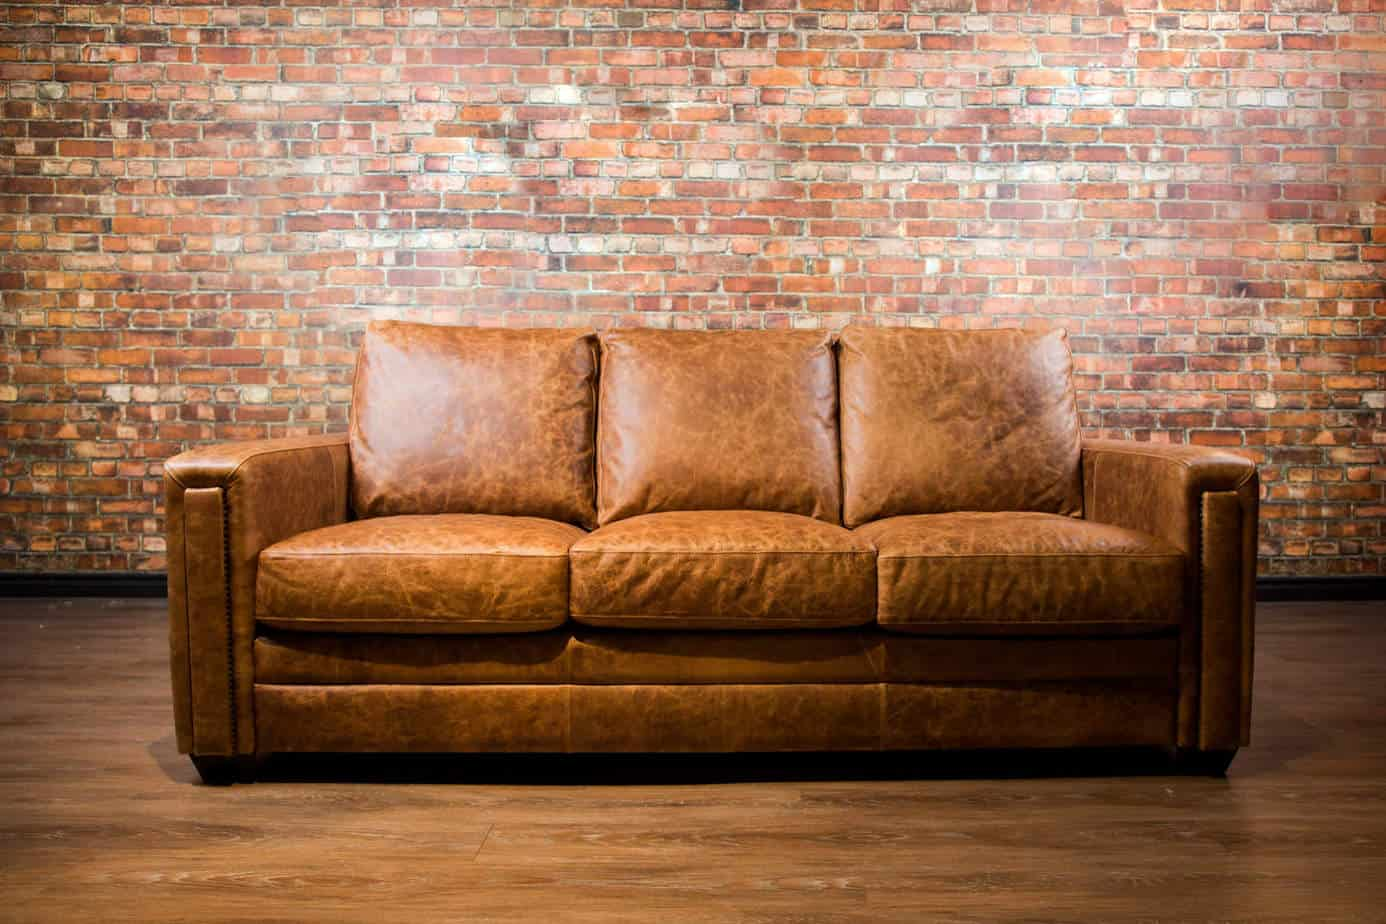 Leather Furniture Traveler Collection: Boss Leather Sofa Canada